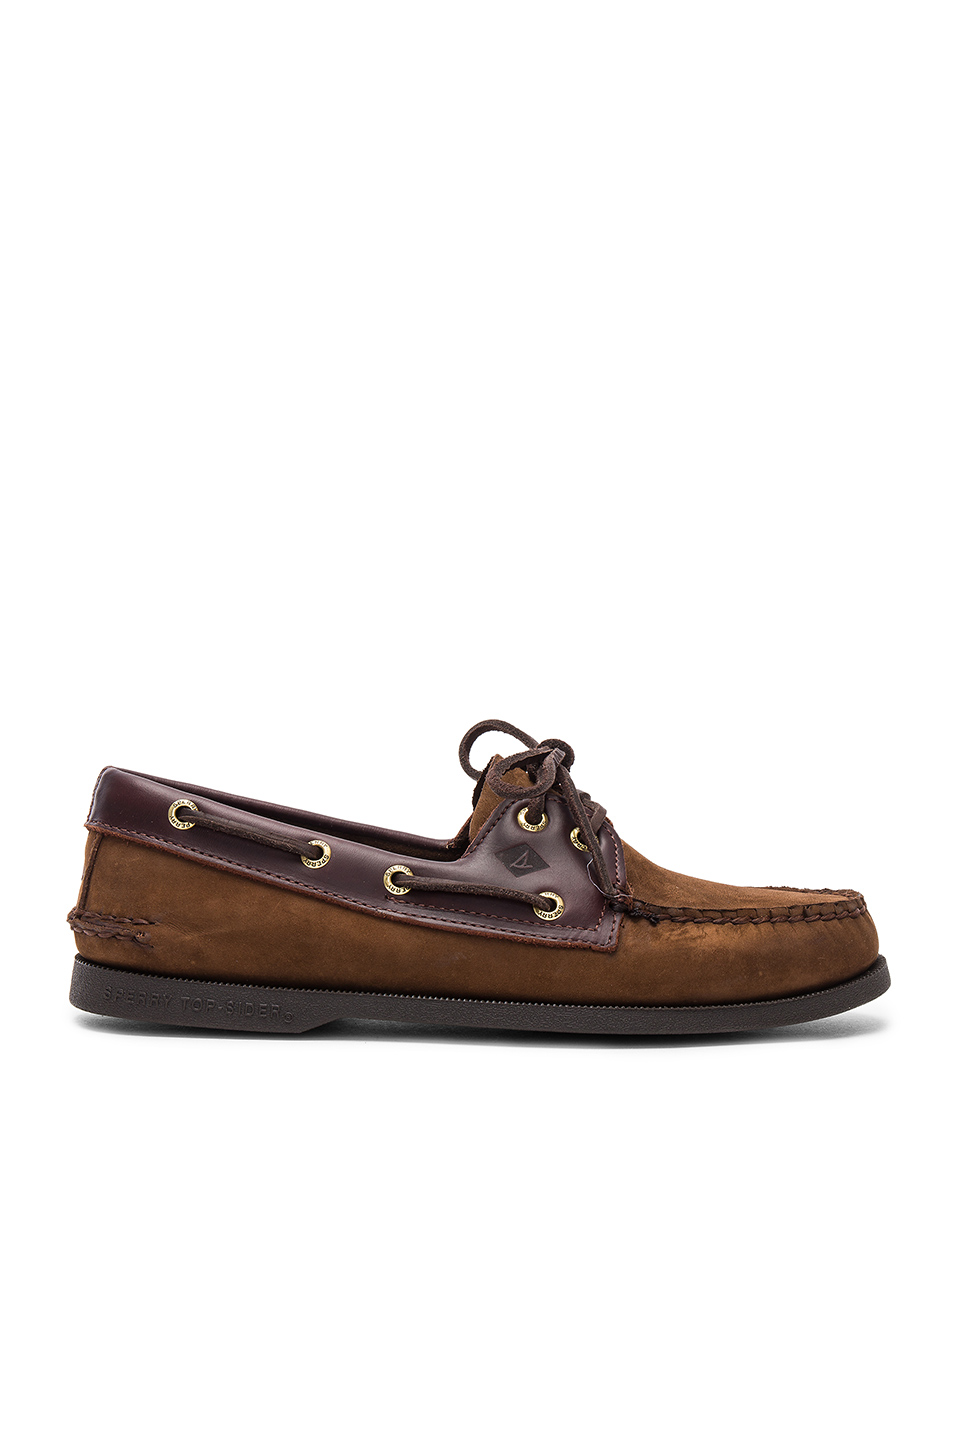 Sperry Top-Sider A/O 2-Eye in Brown & Buc Brown